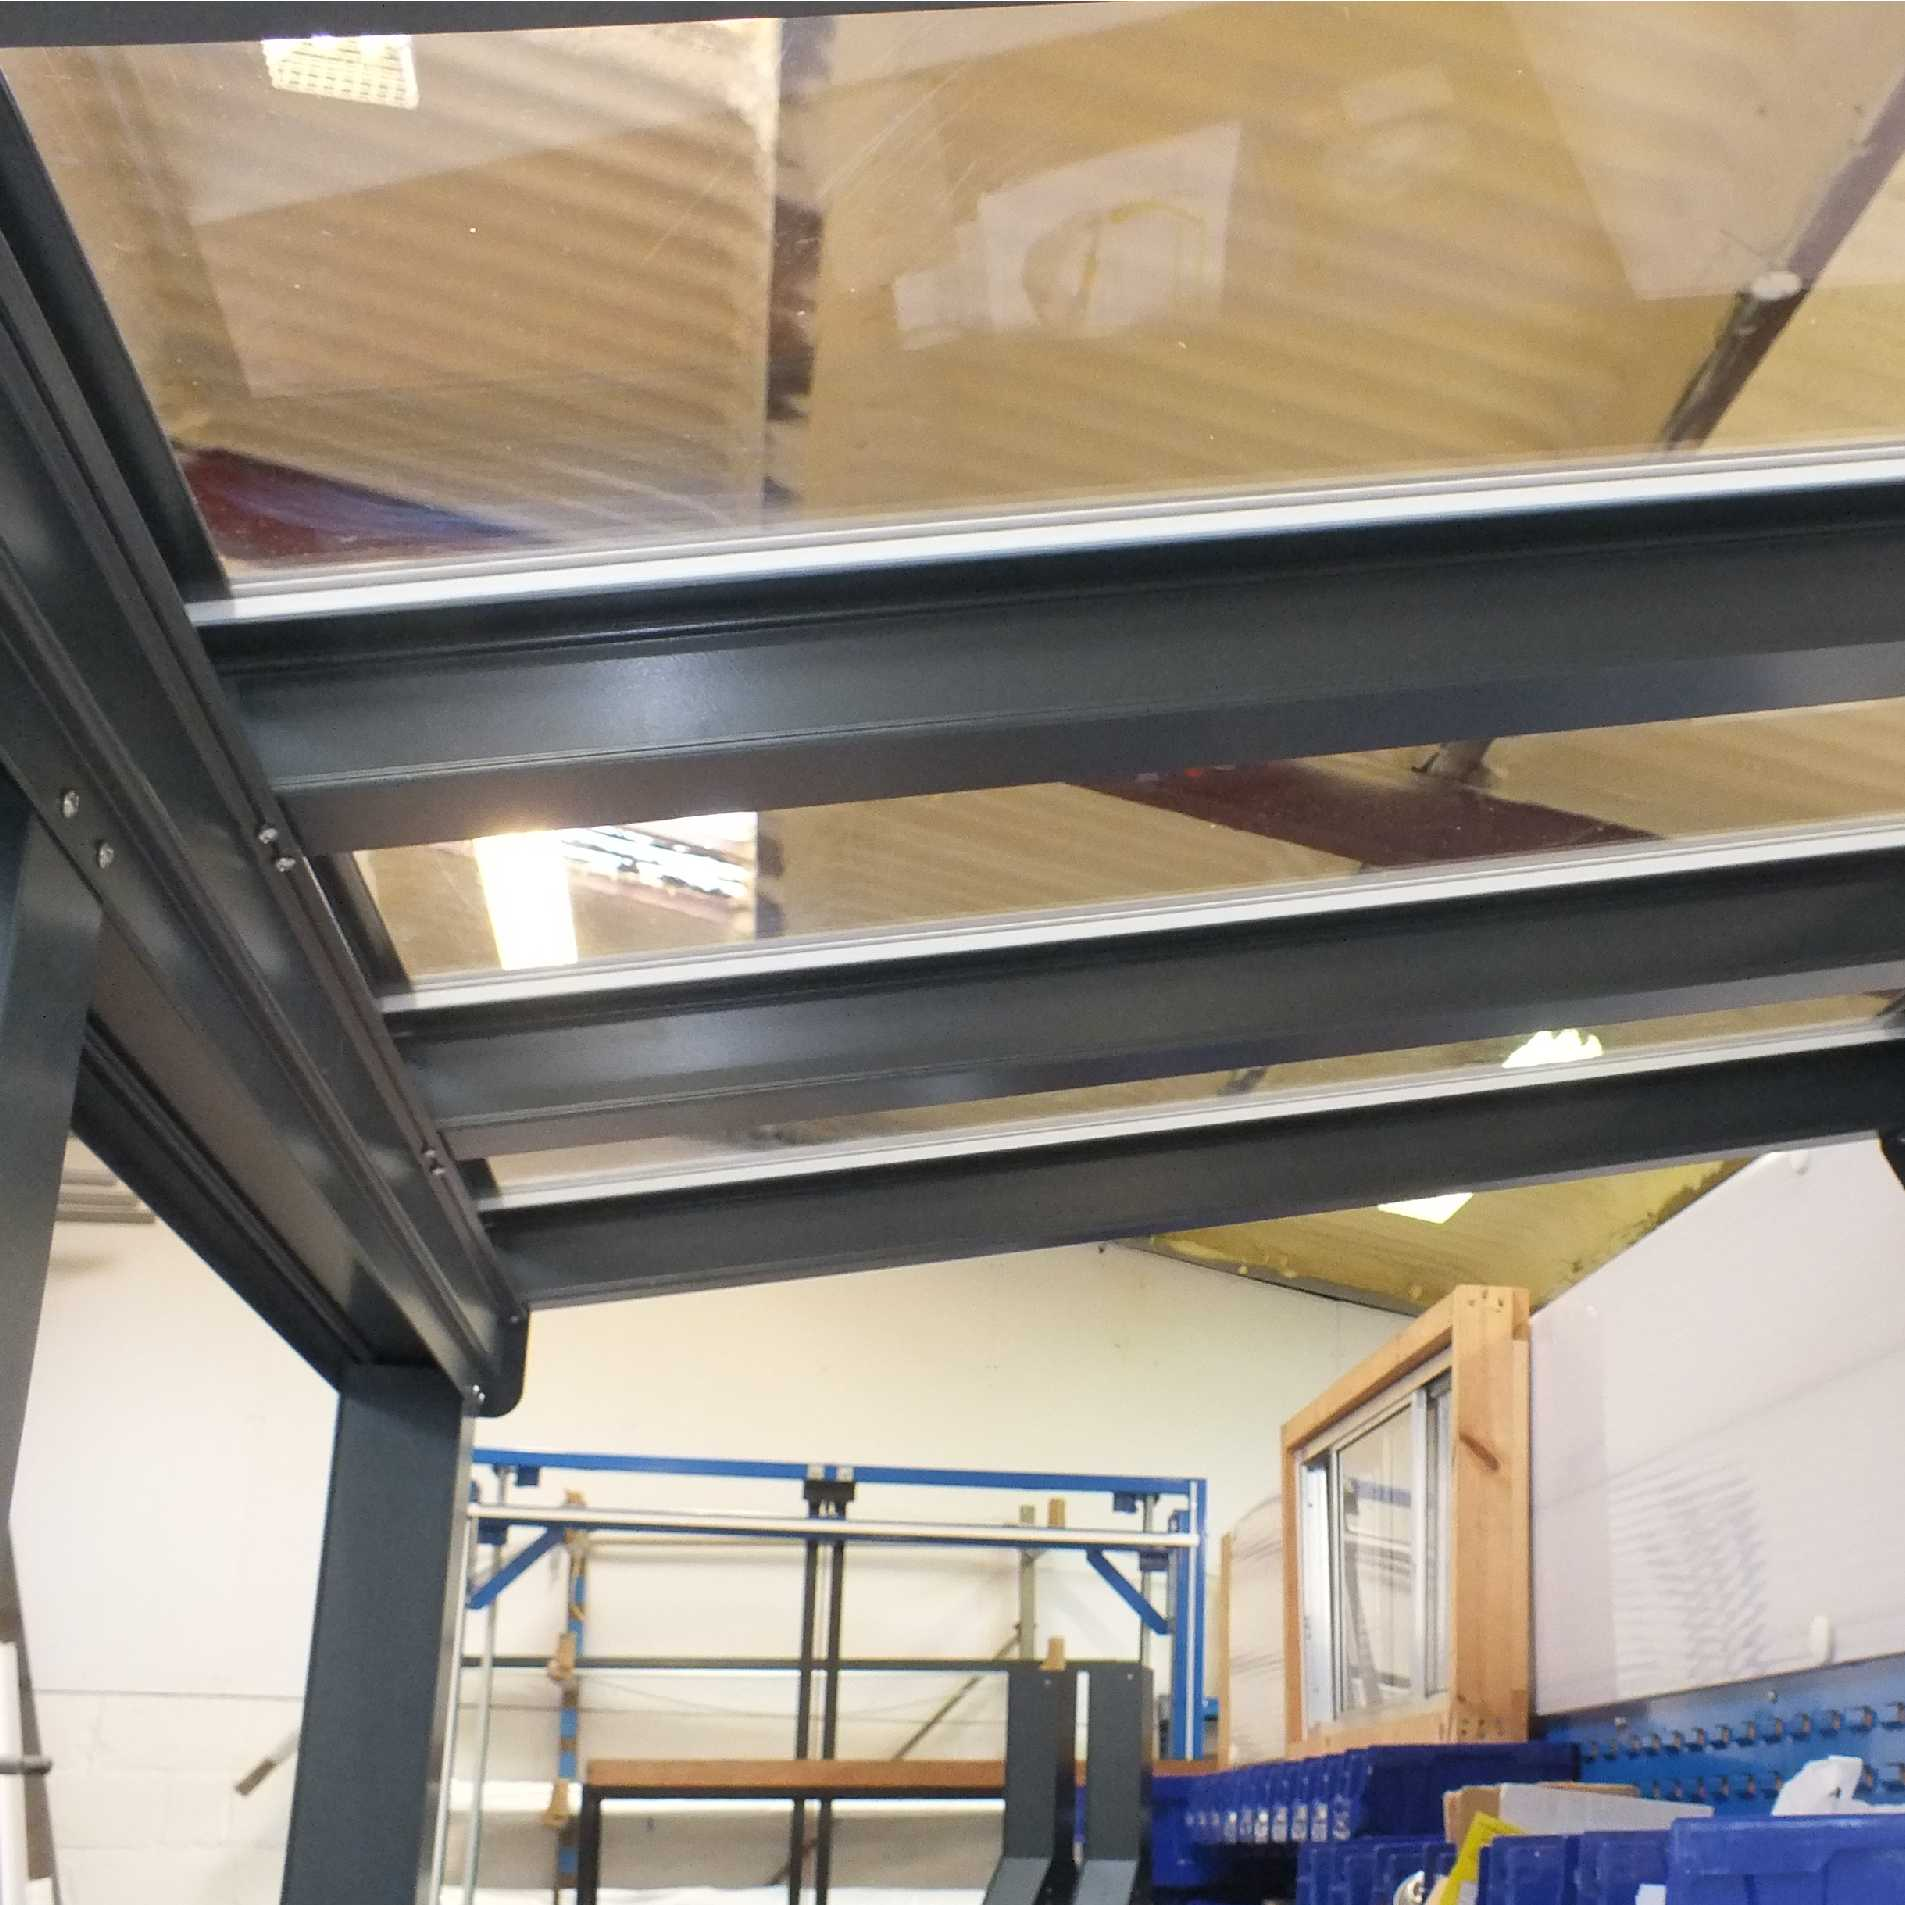 Great deals on Omega Smart Lean-To Canopy, Anthracite Grey, 6mm Glass Clear Plate Polycarbonate Glazing - 7.7m (W) x 3.5m (P), (4) Supporting Posts